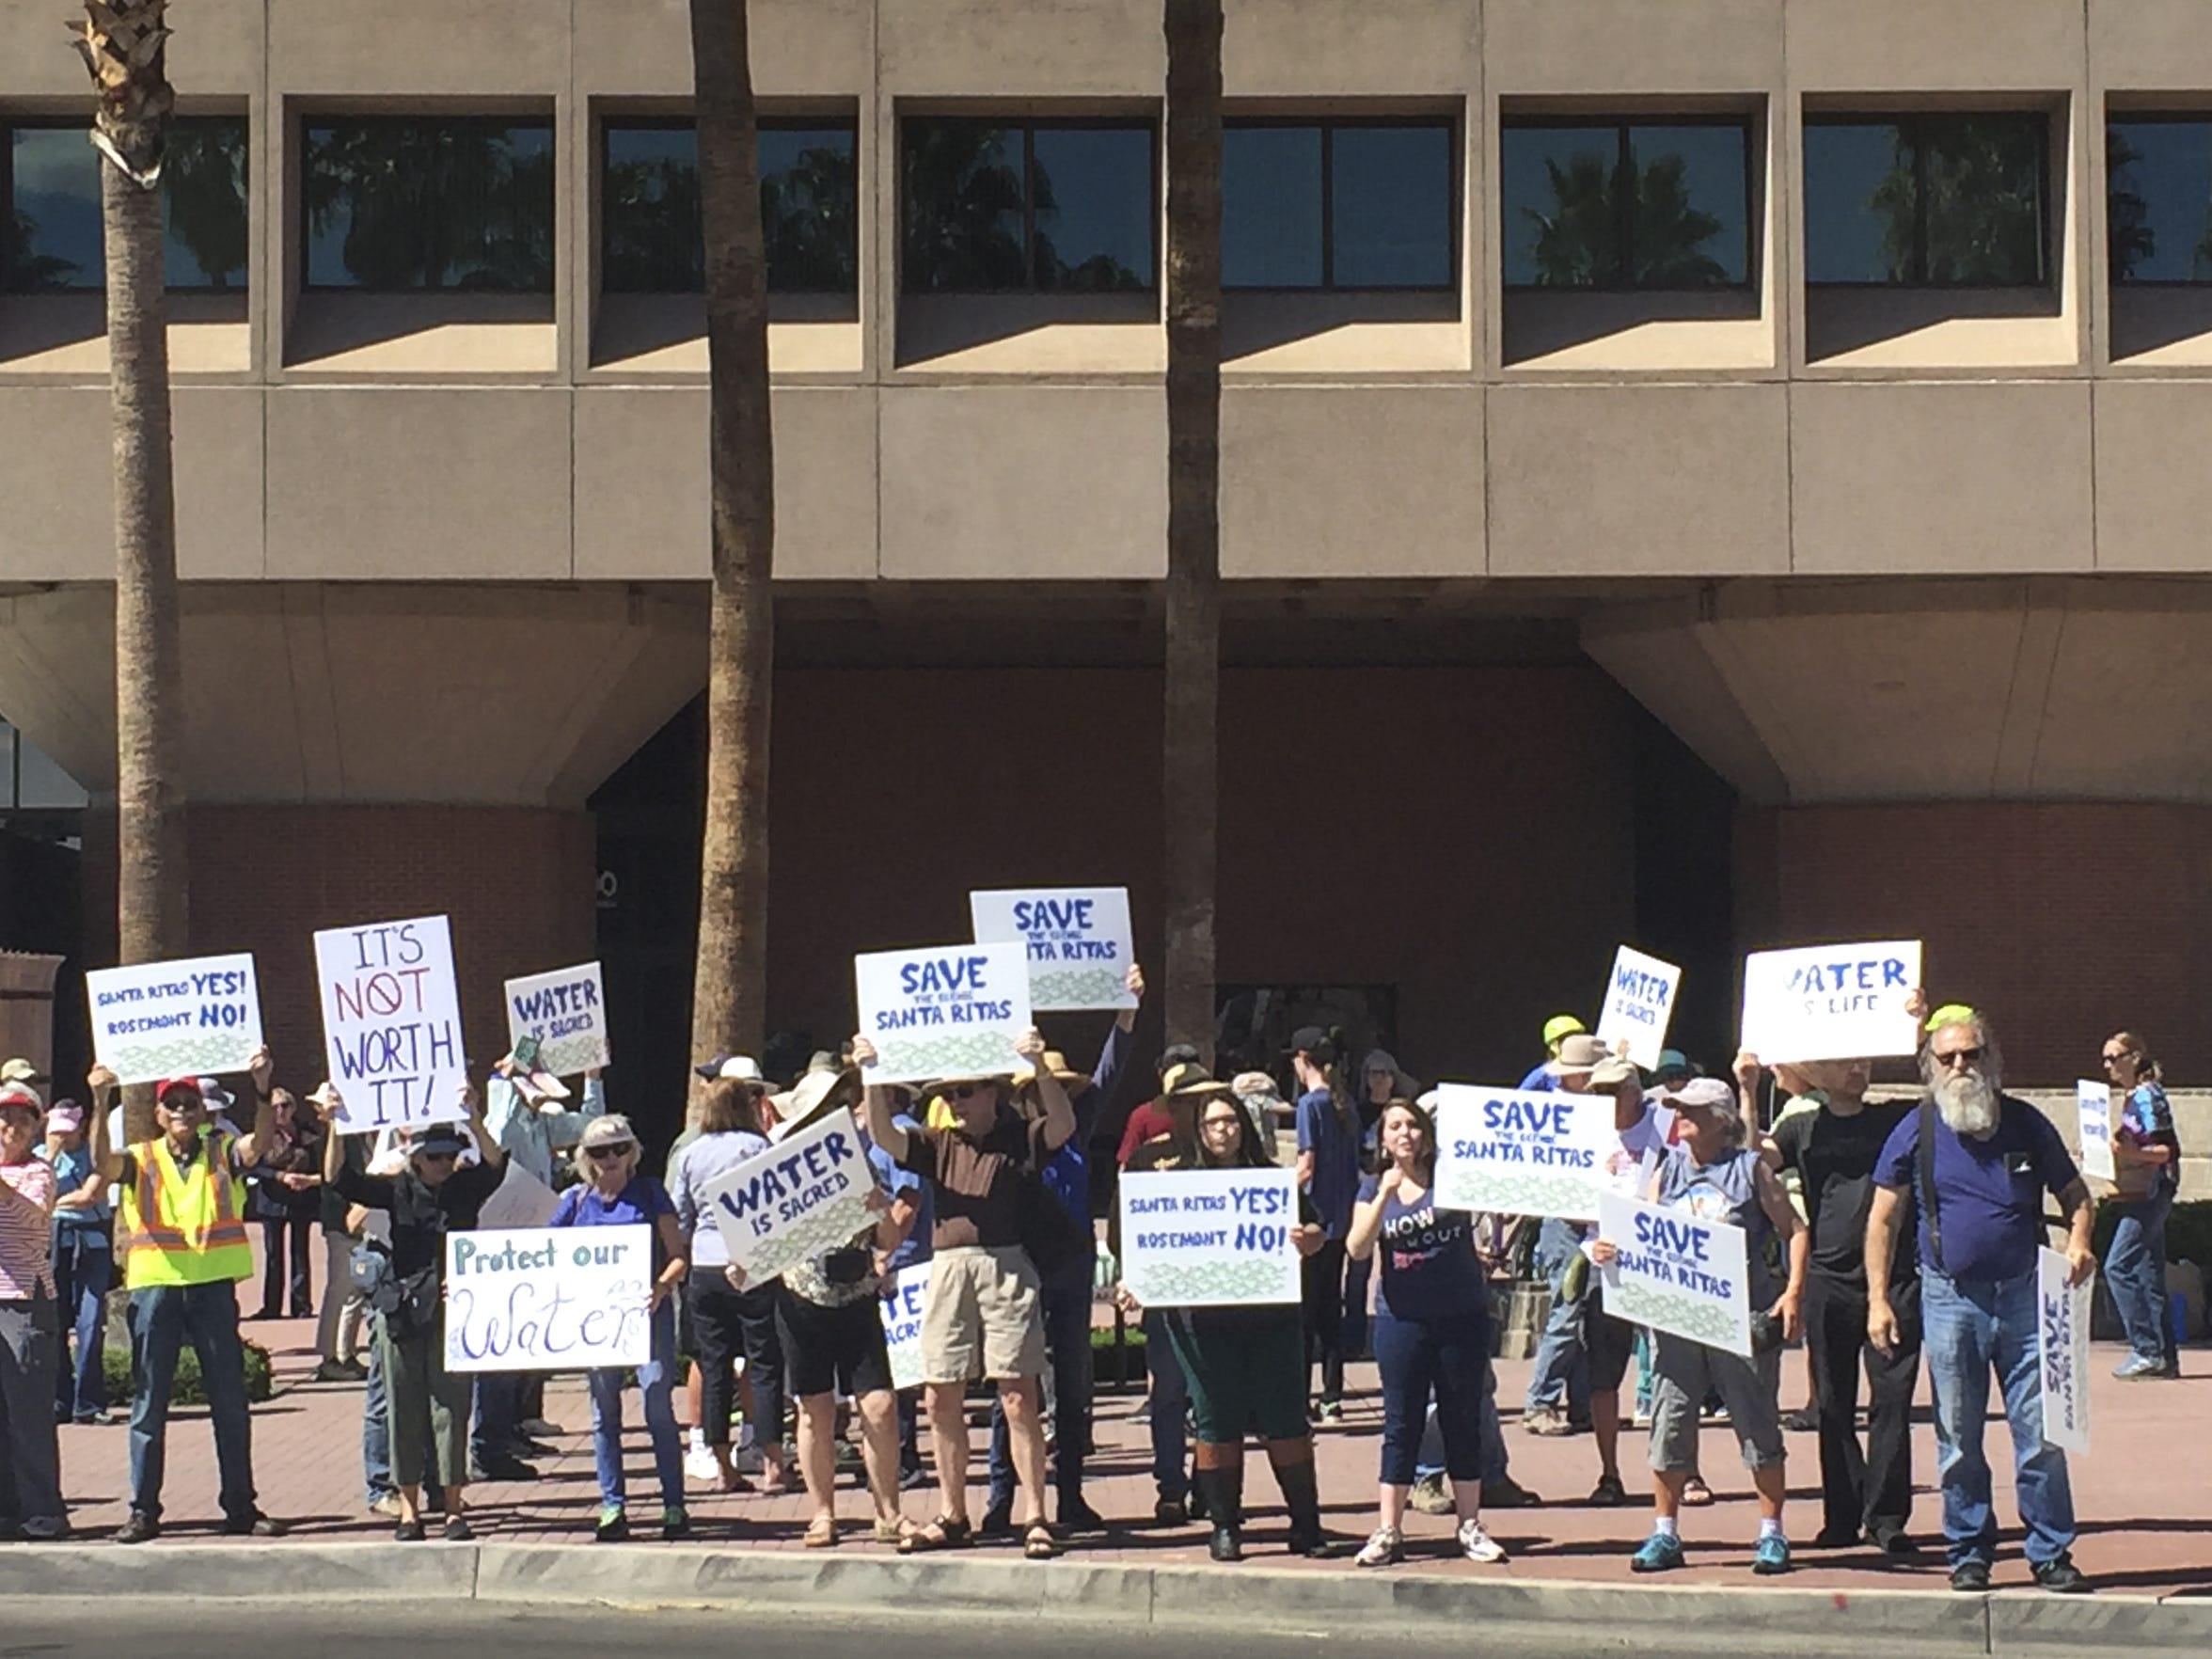 Demonstrators gather outside Tucson Federal Building on April 13, 2019, to protest the planned Rosemont Mine. They fear the mining operation will cause ecological damage to the Santa Rita Mountains and threaten local groundwater.